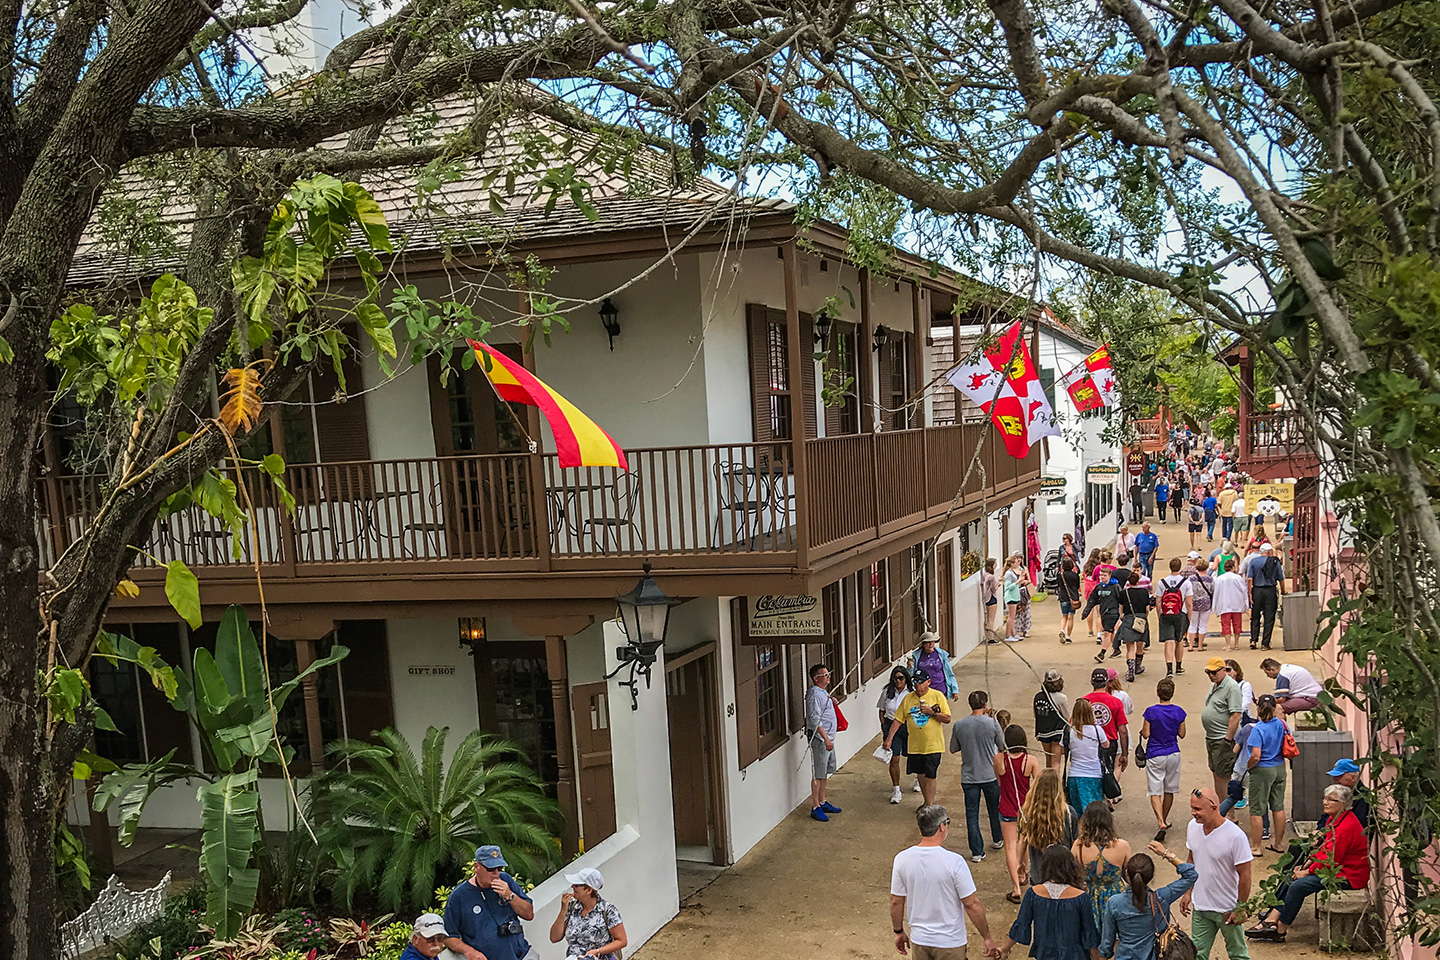 List of Fun Things To Do In St. Augustine, Florida - St. George Street